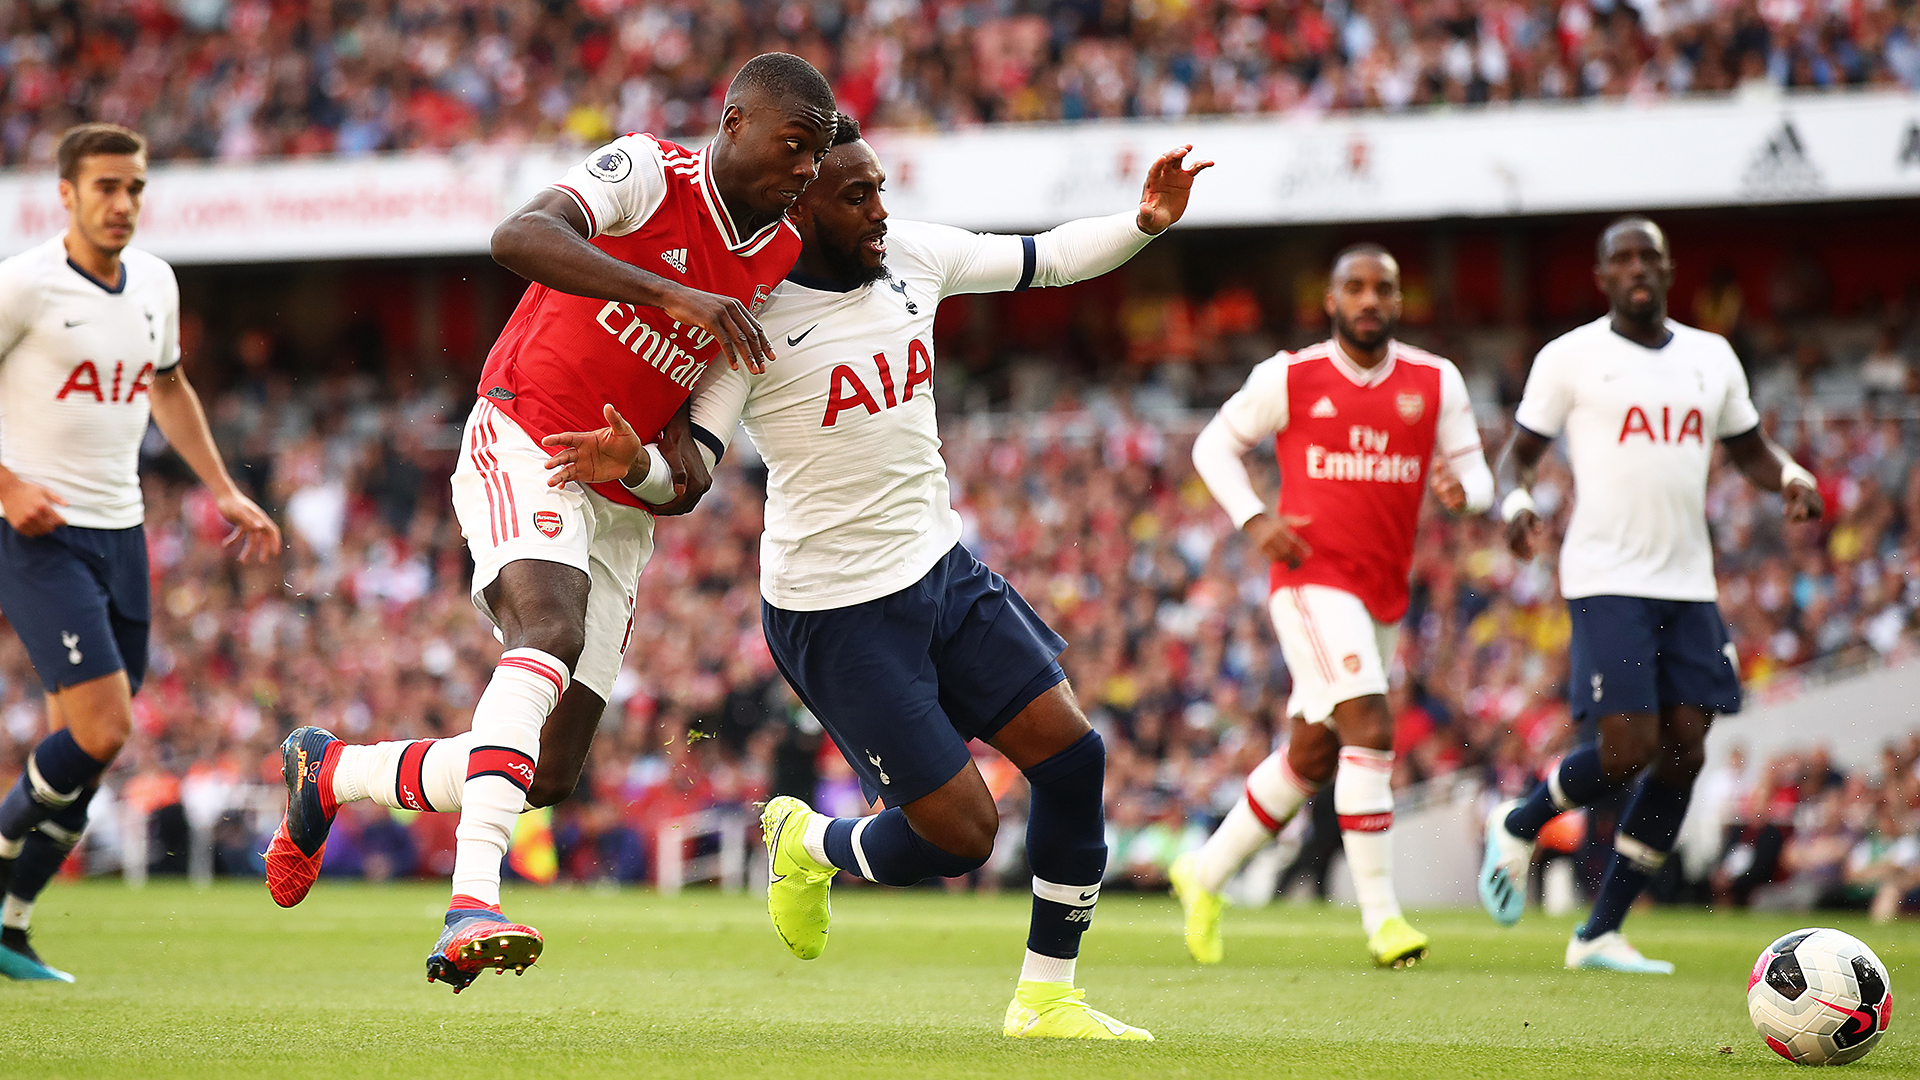 Video: North London Derby - who will strike first?